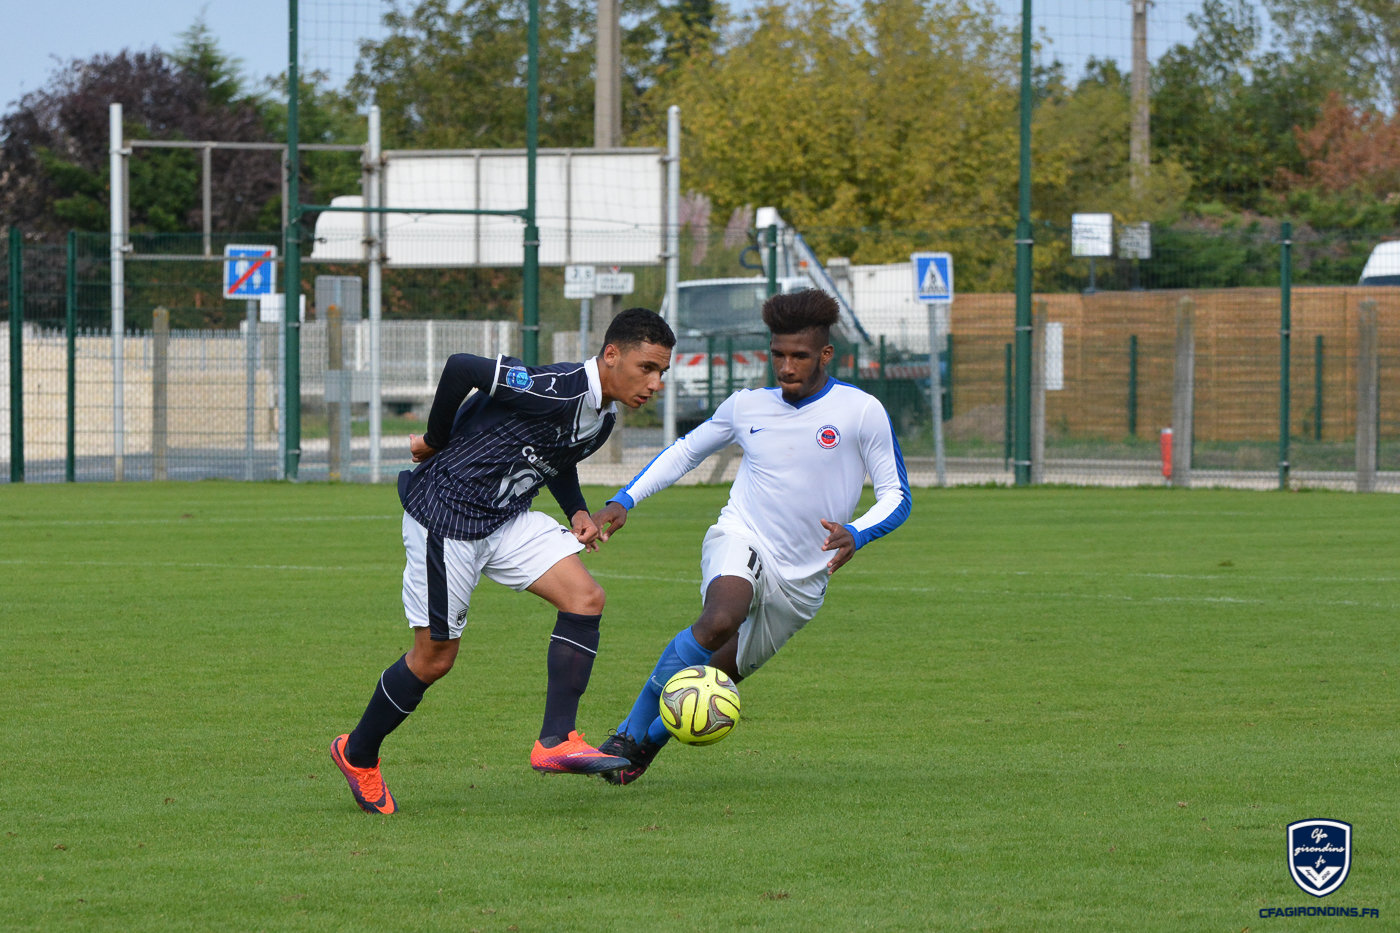 Cfa Girondins : Revers à Châteauroux (2-0) - Formation Girondins